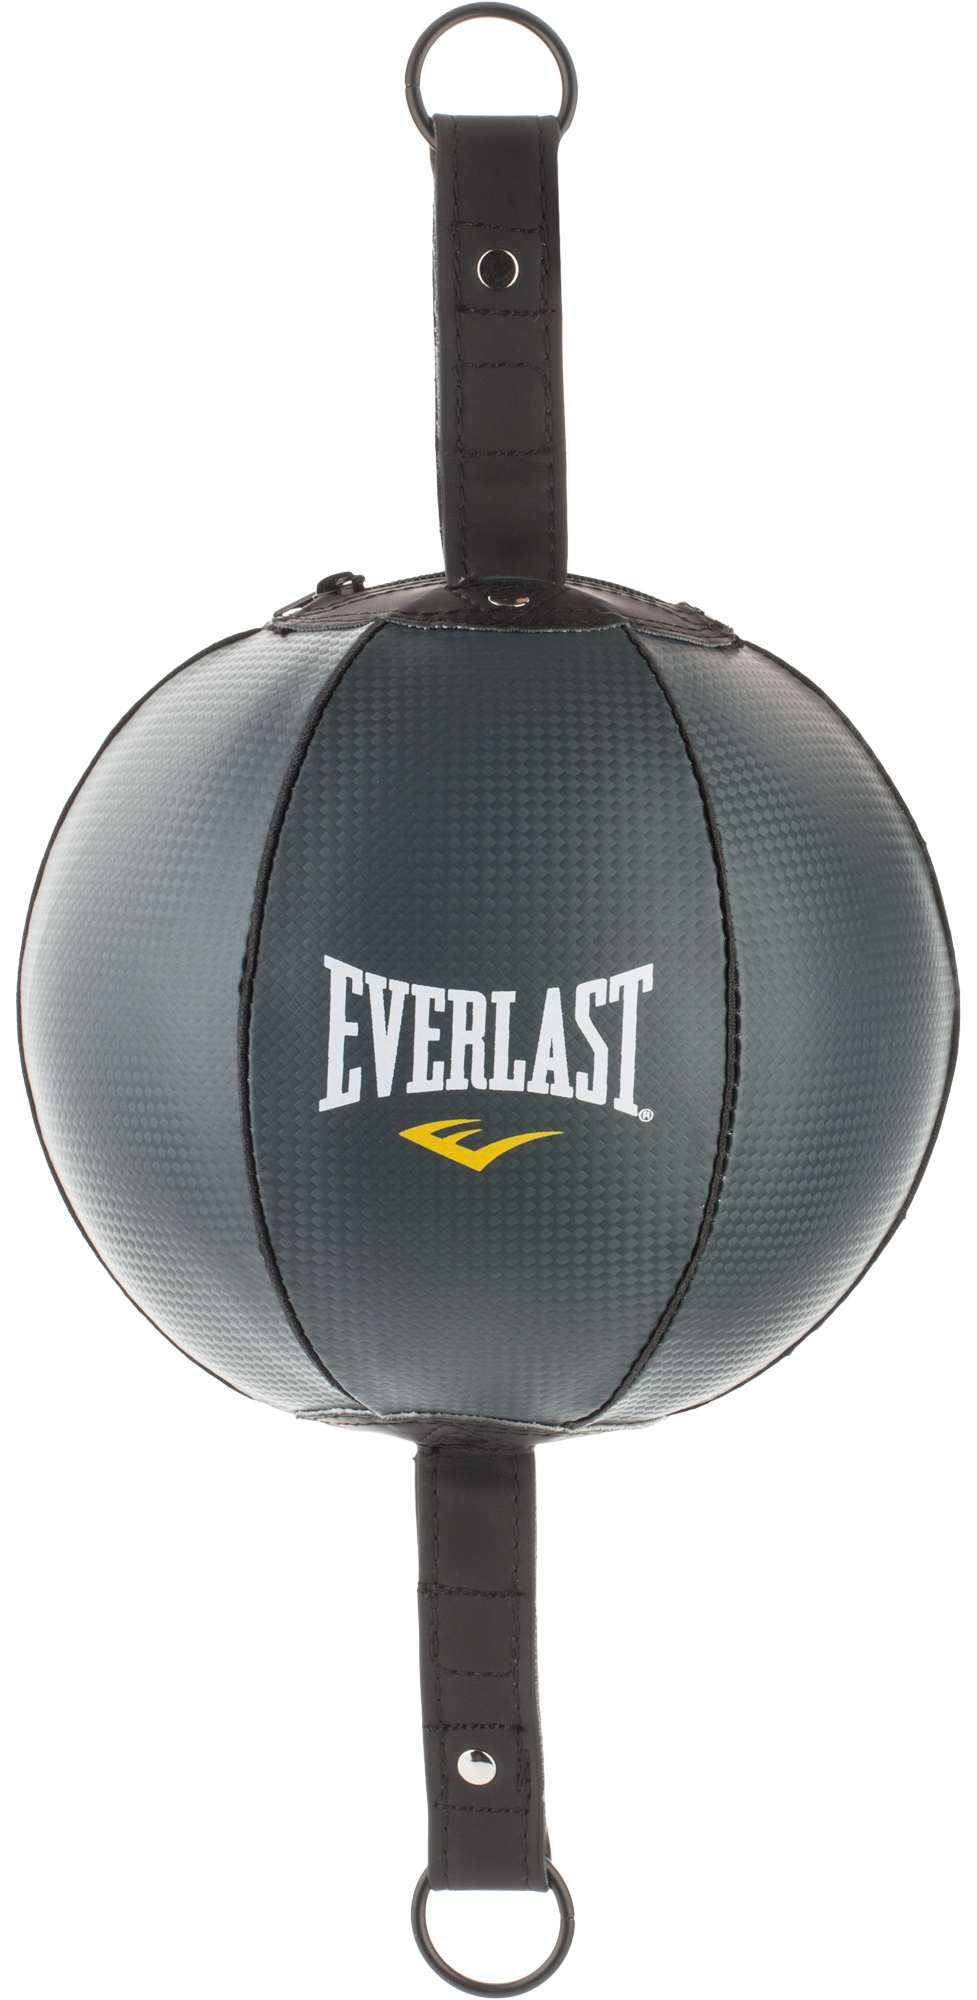 Everlast Груша пневматическая Everlast PU Double End 20 спортивная груша для бокса